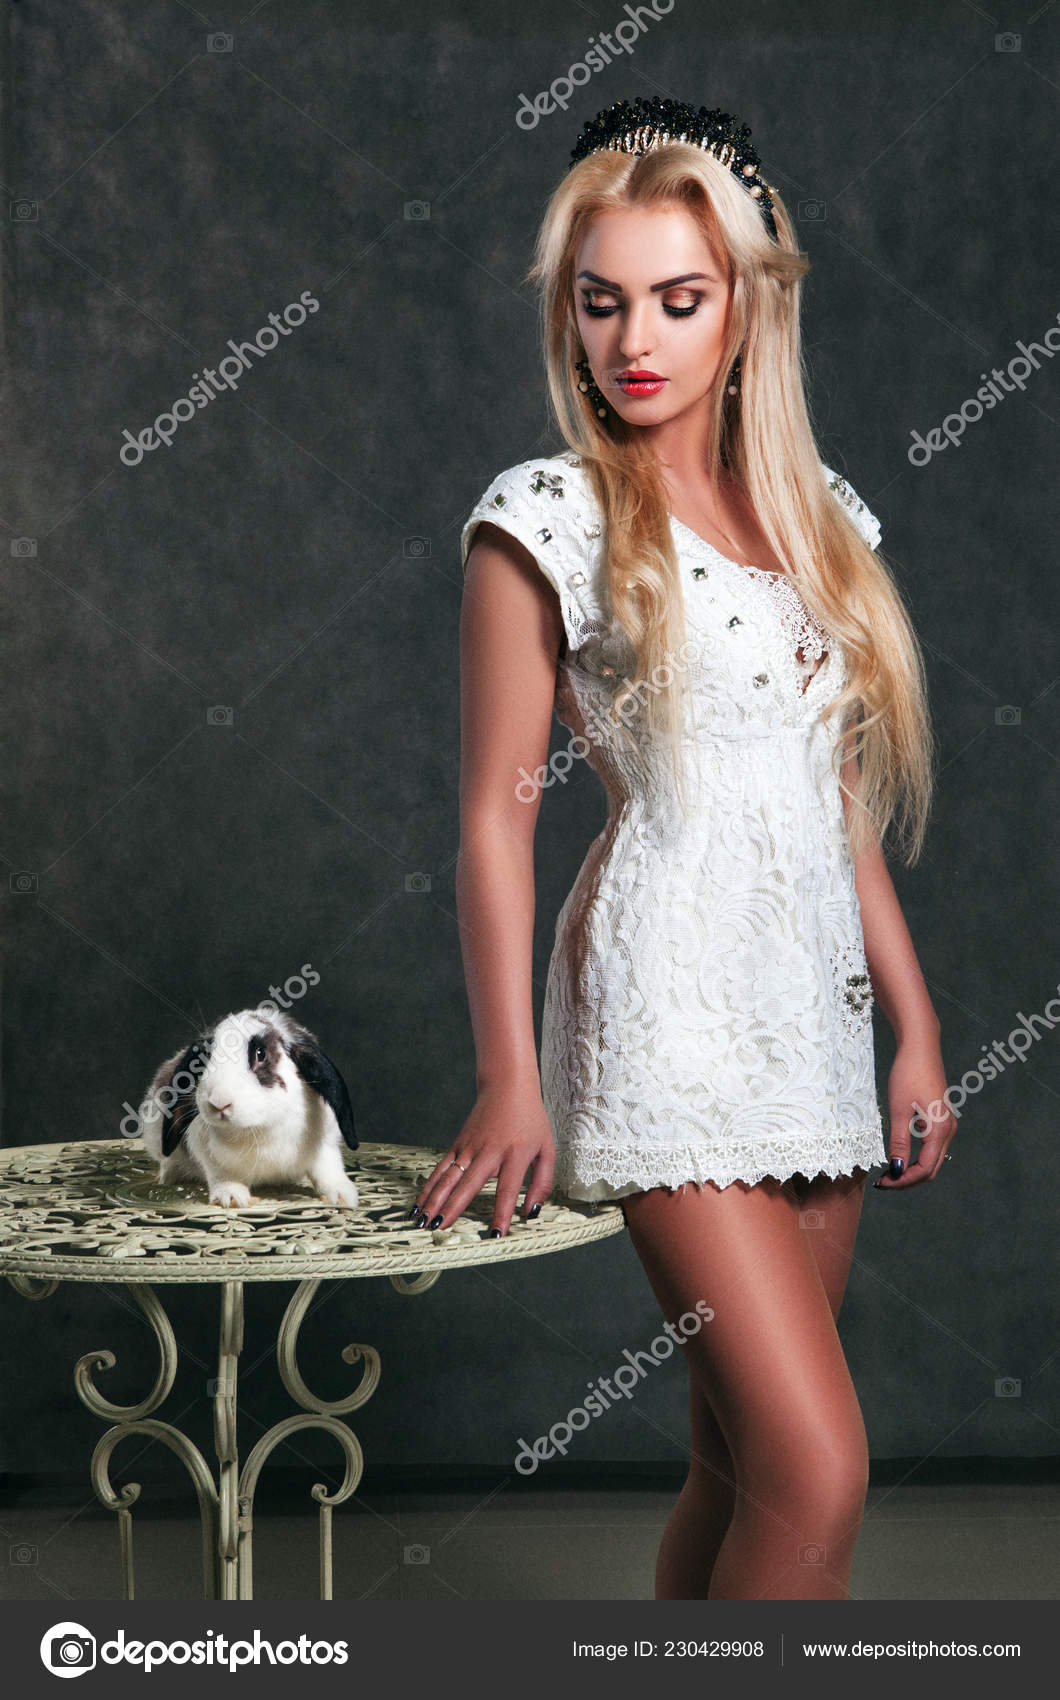 Very young bunny models